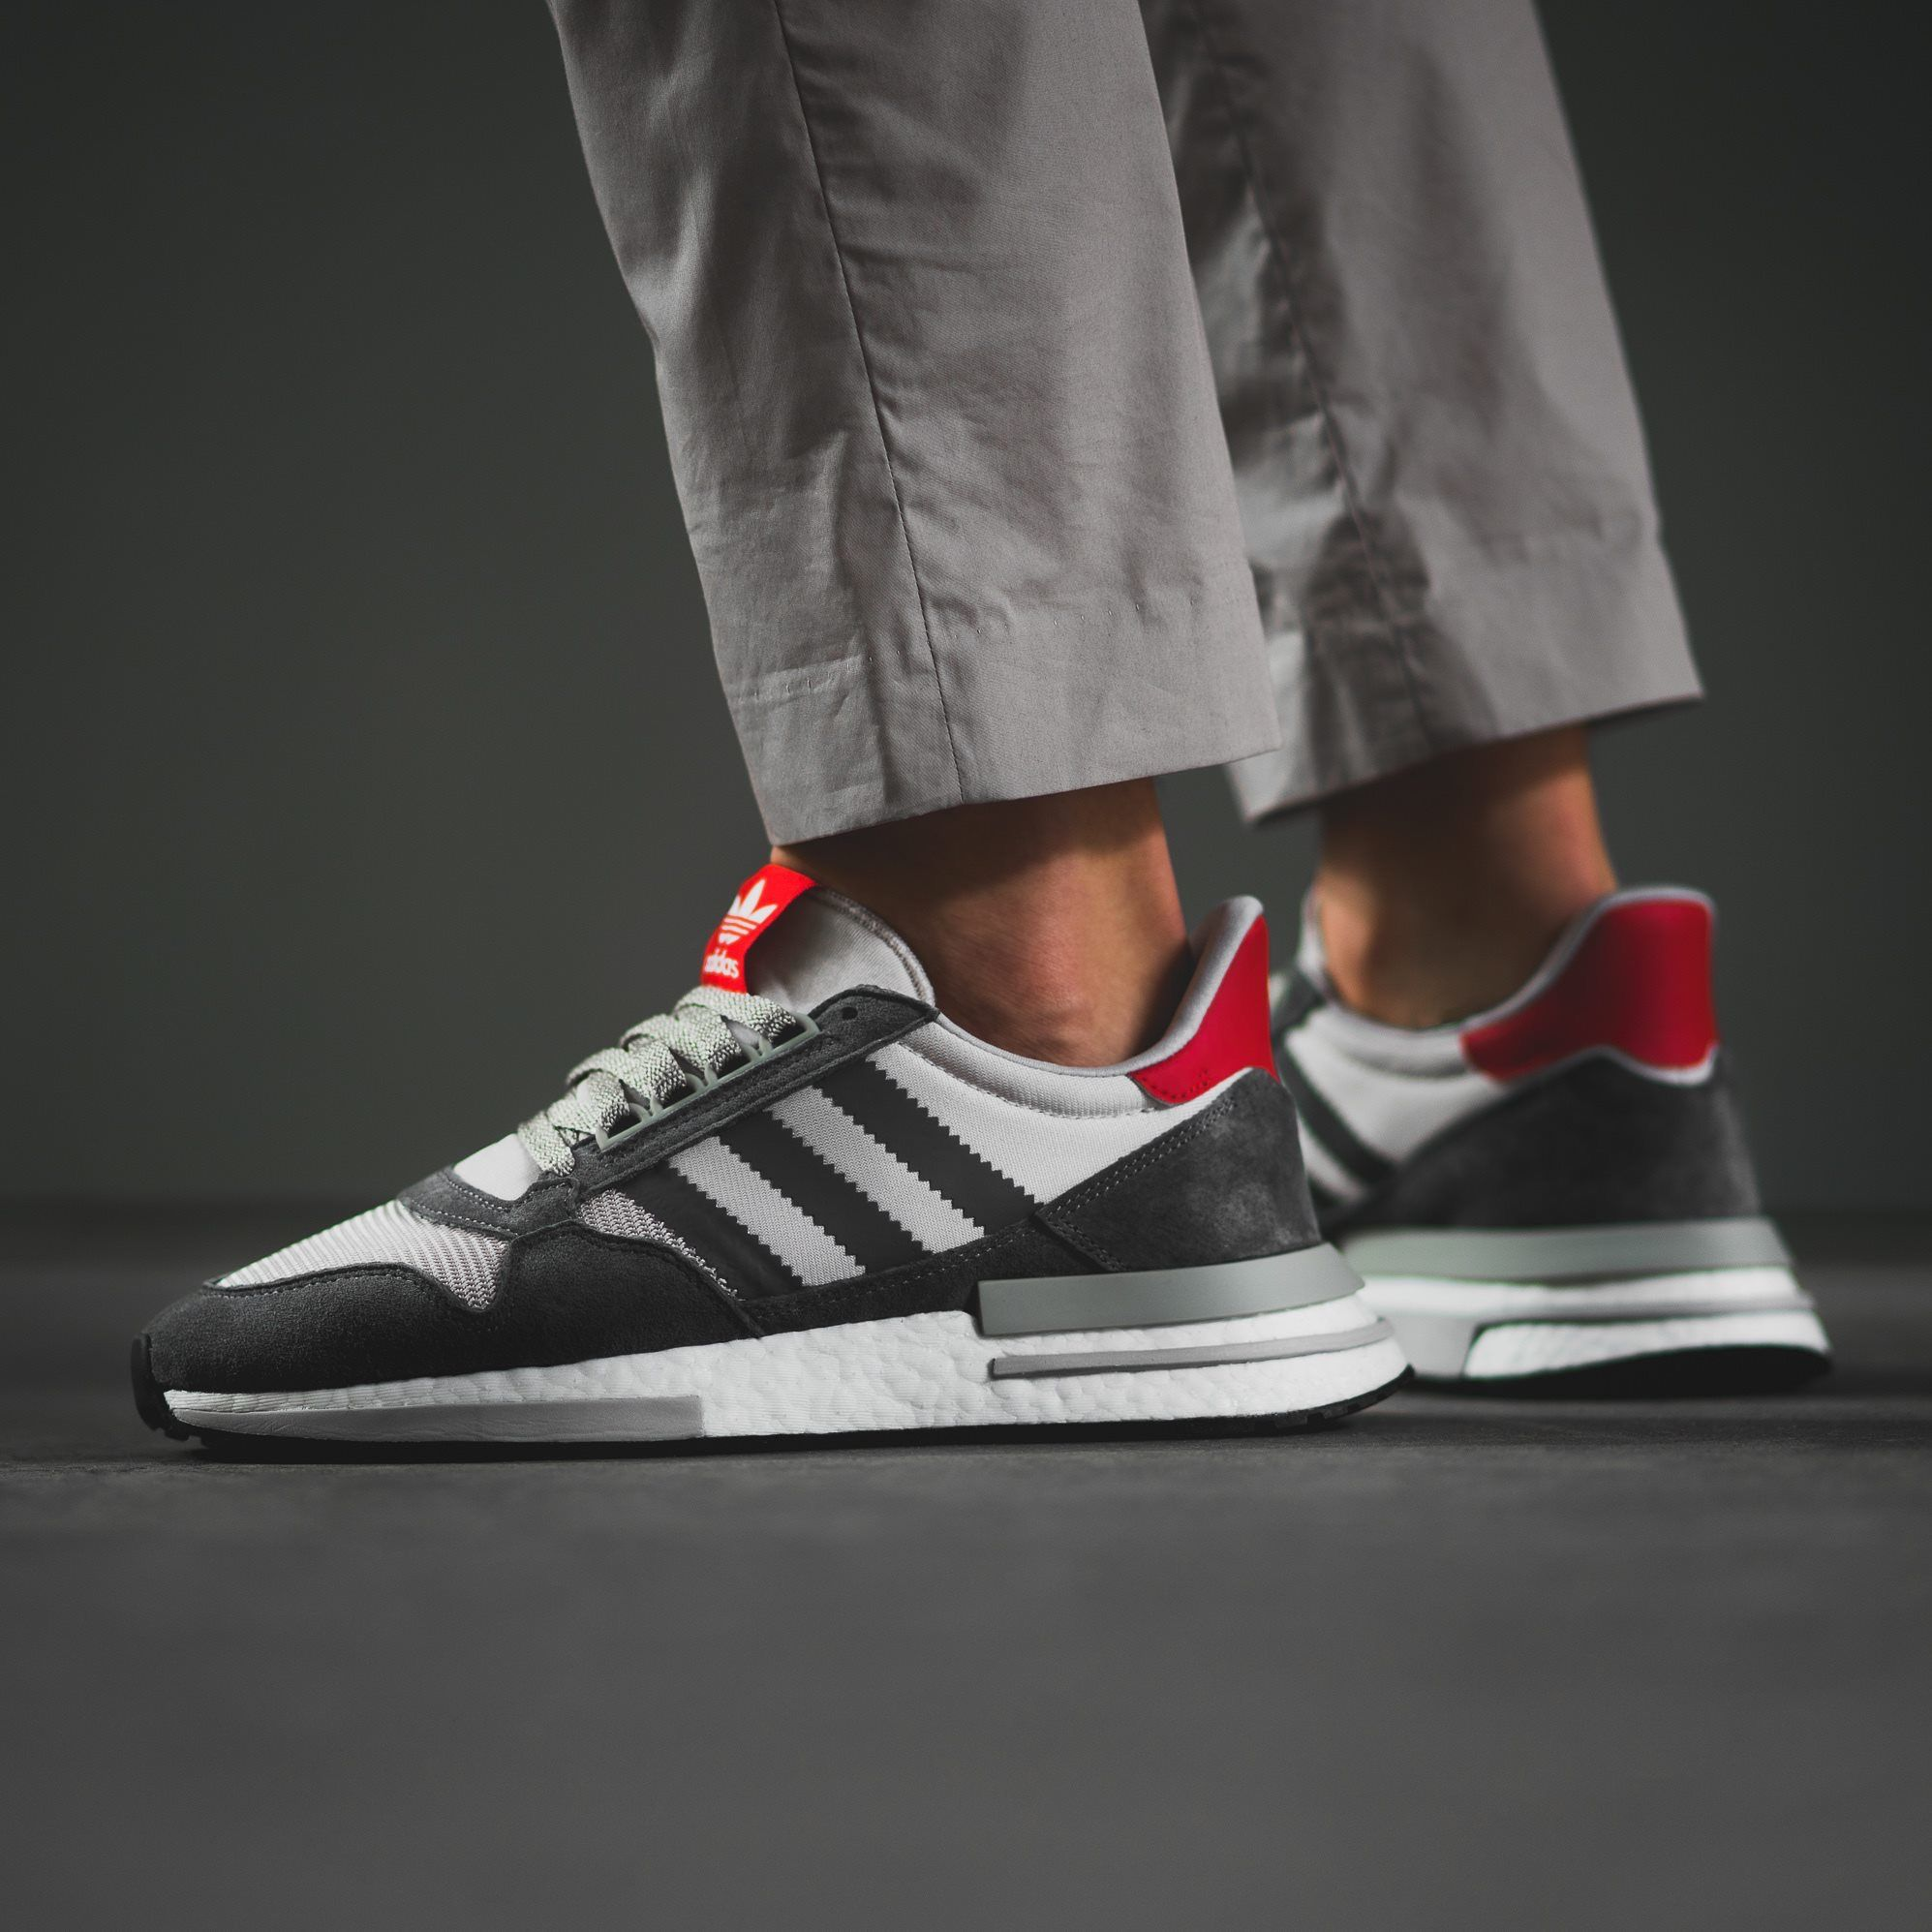 f577b4e5 adidas Originals ZX 500 RM | Men's fashion in 2019